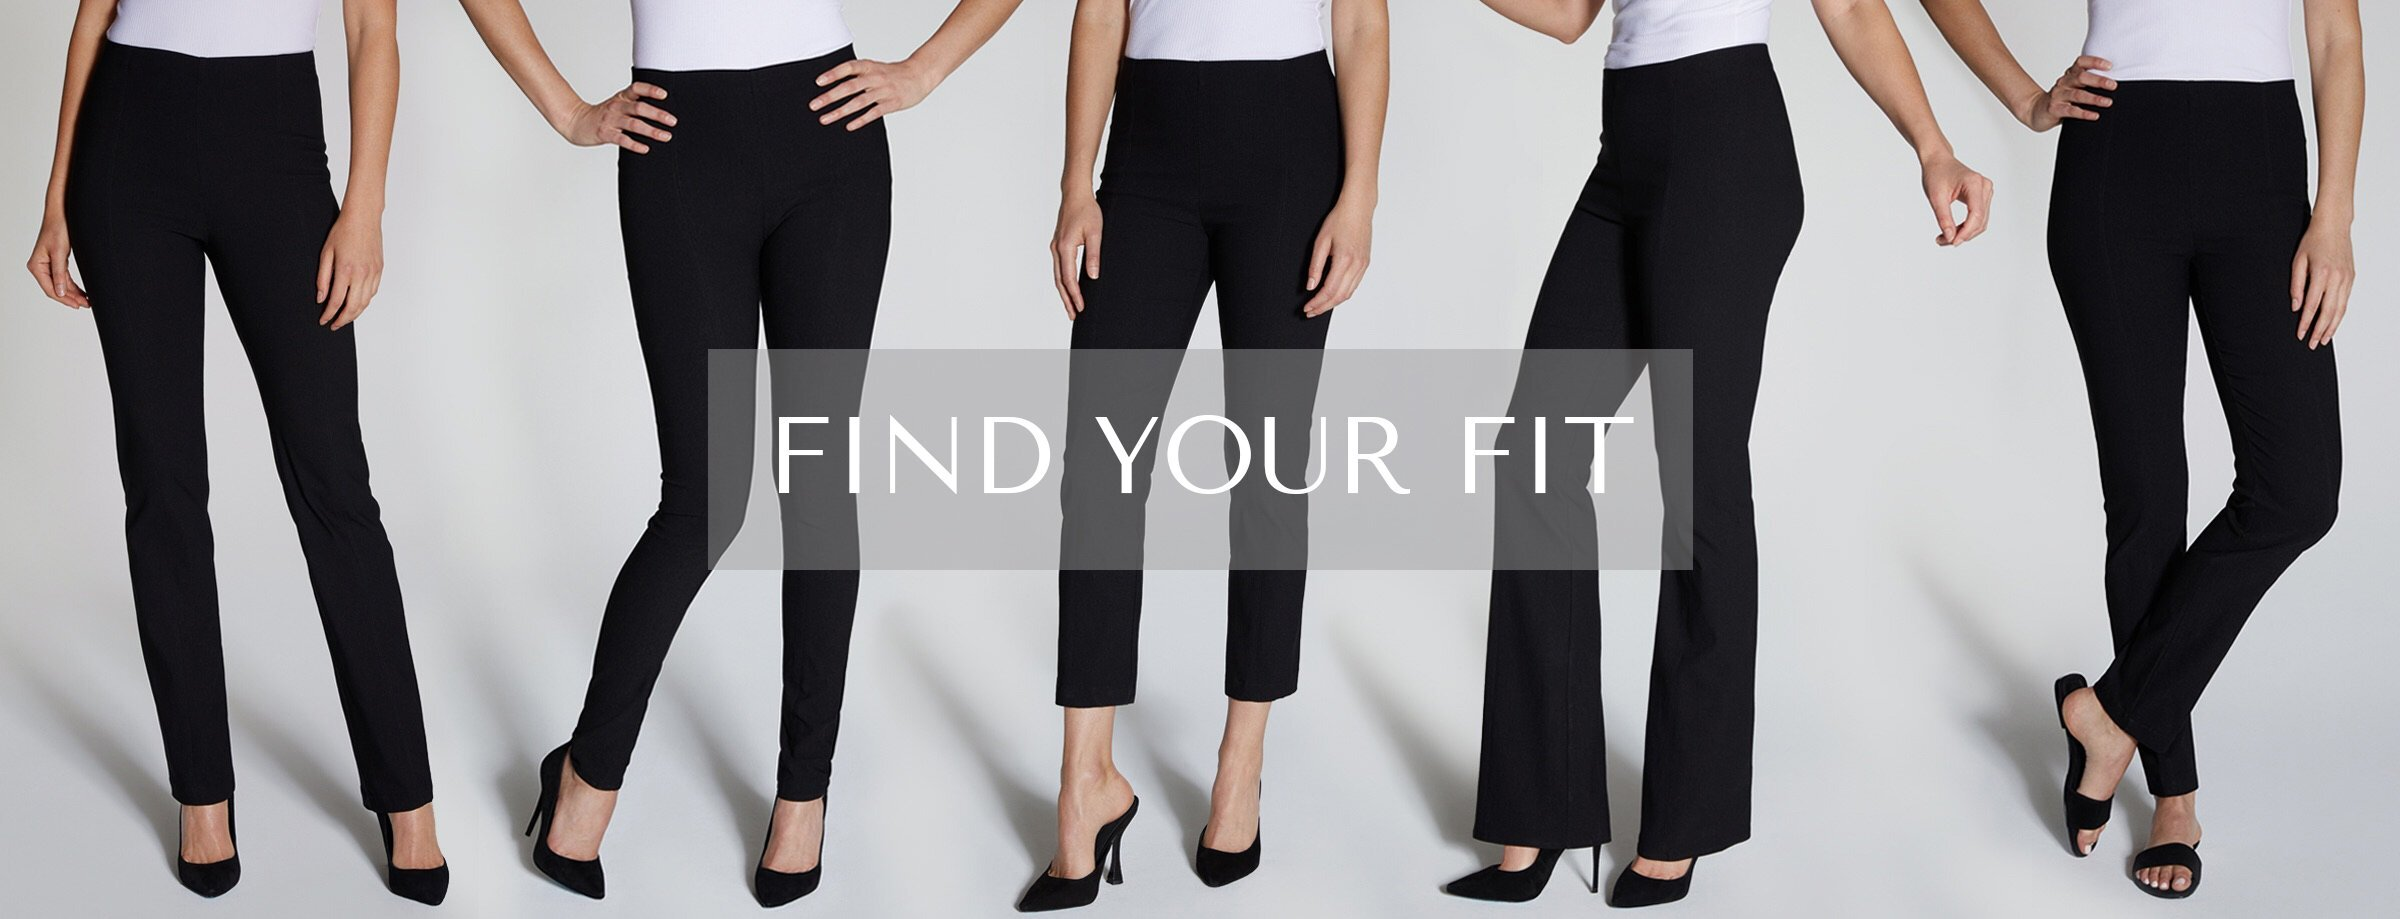 Find your fit  and feel the magic - As seen in O Magazine - Who What Wear - The View - People Magazine.